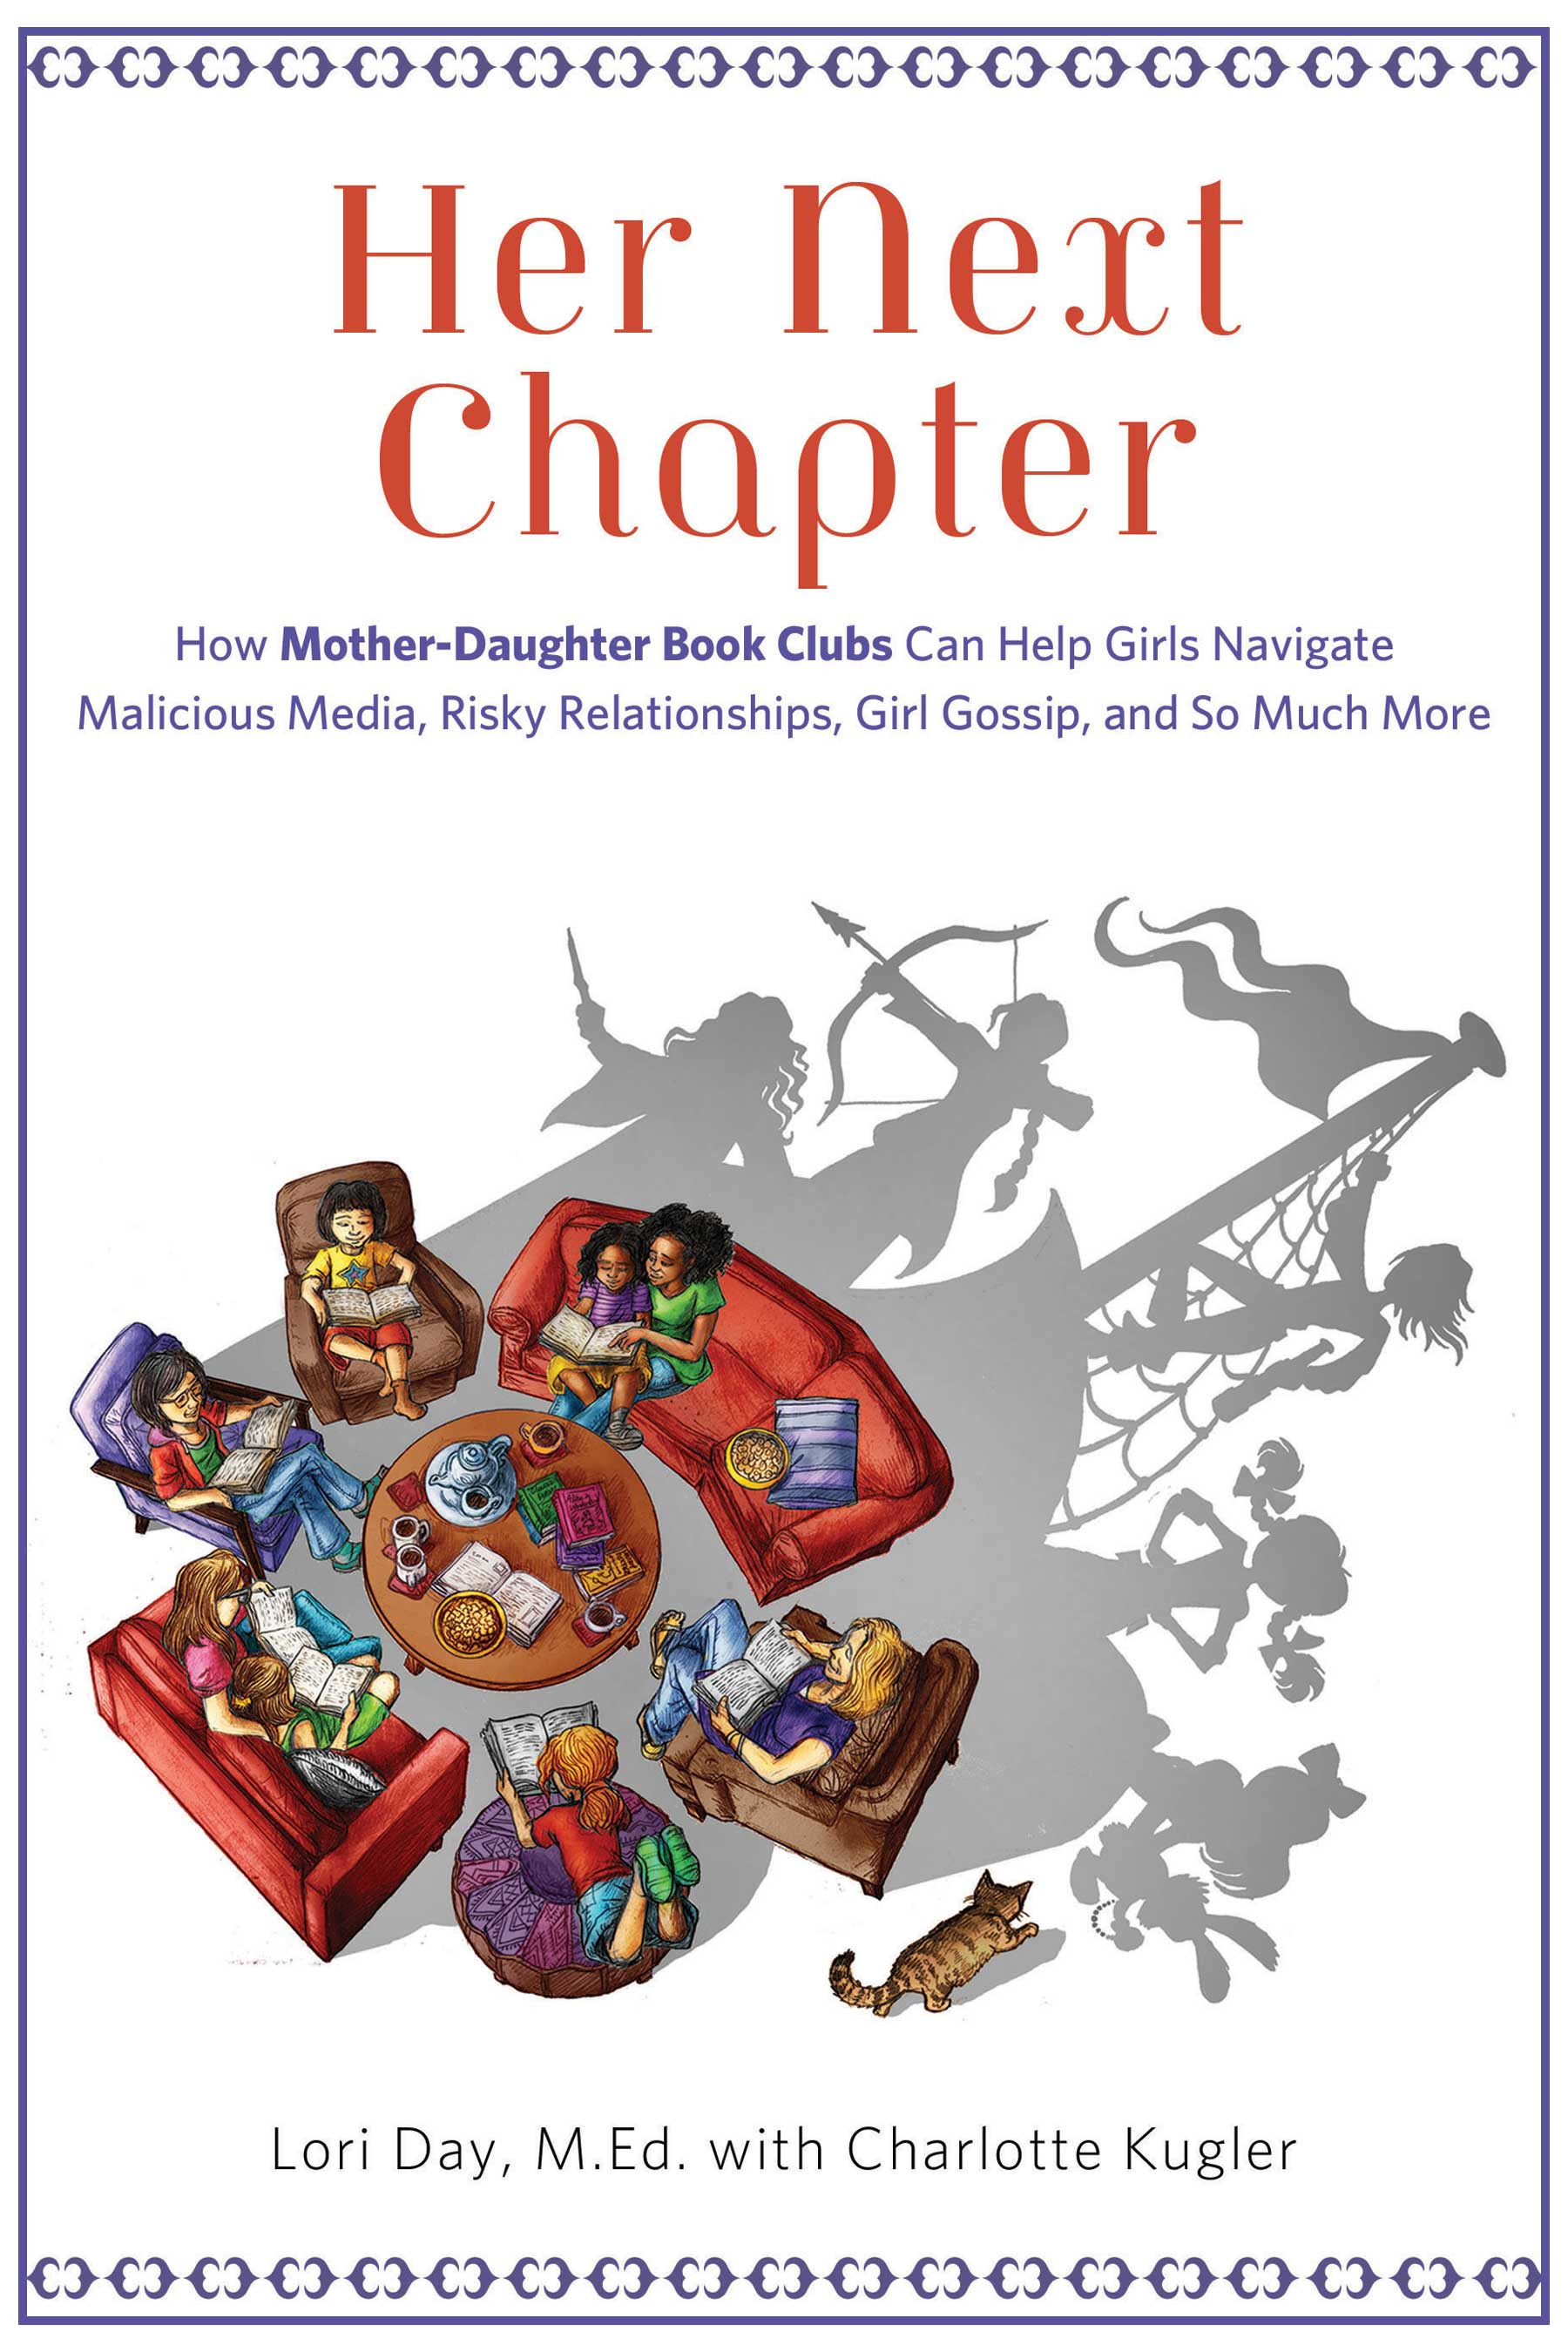 Her Next Chapter by Lori Day and Charlotte Kugler